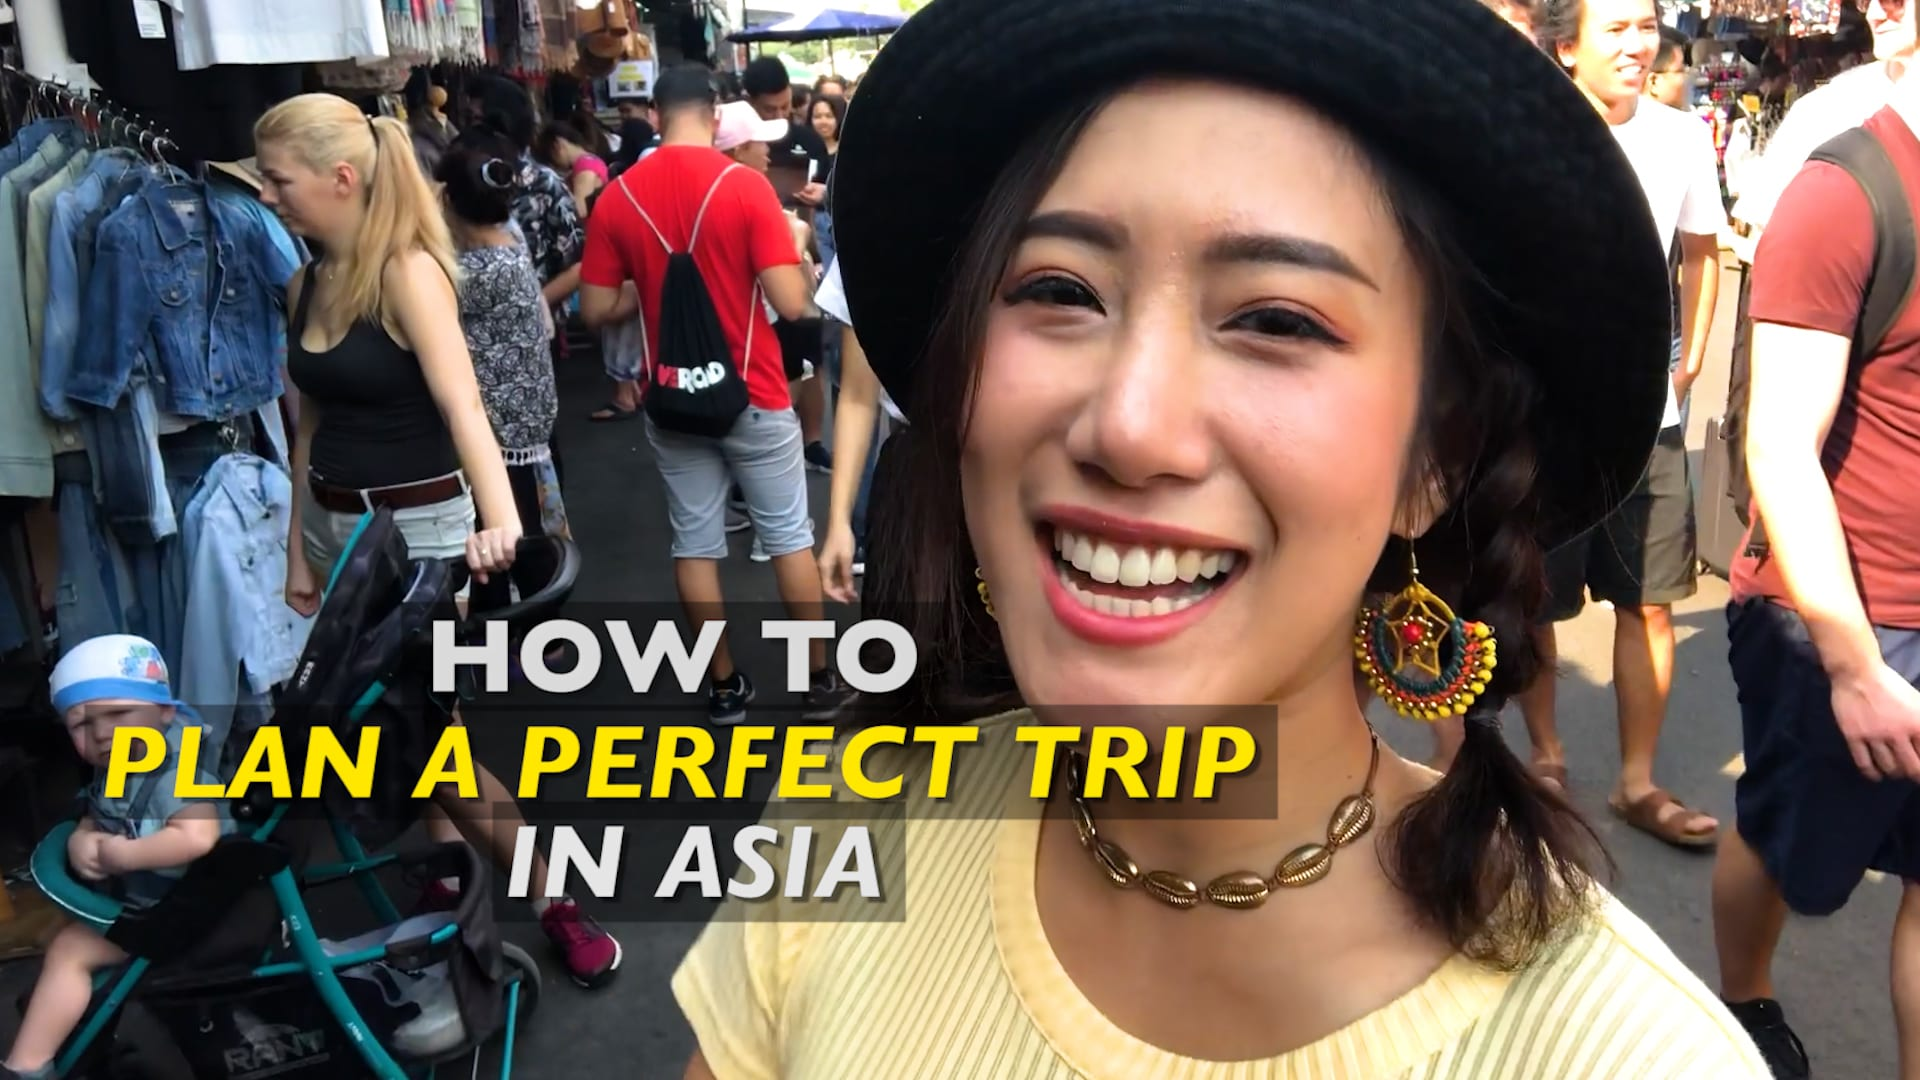 How to plan a perfect trip around Asia